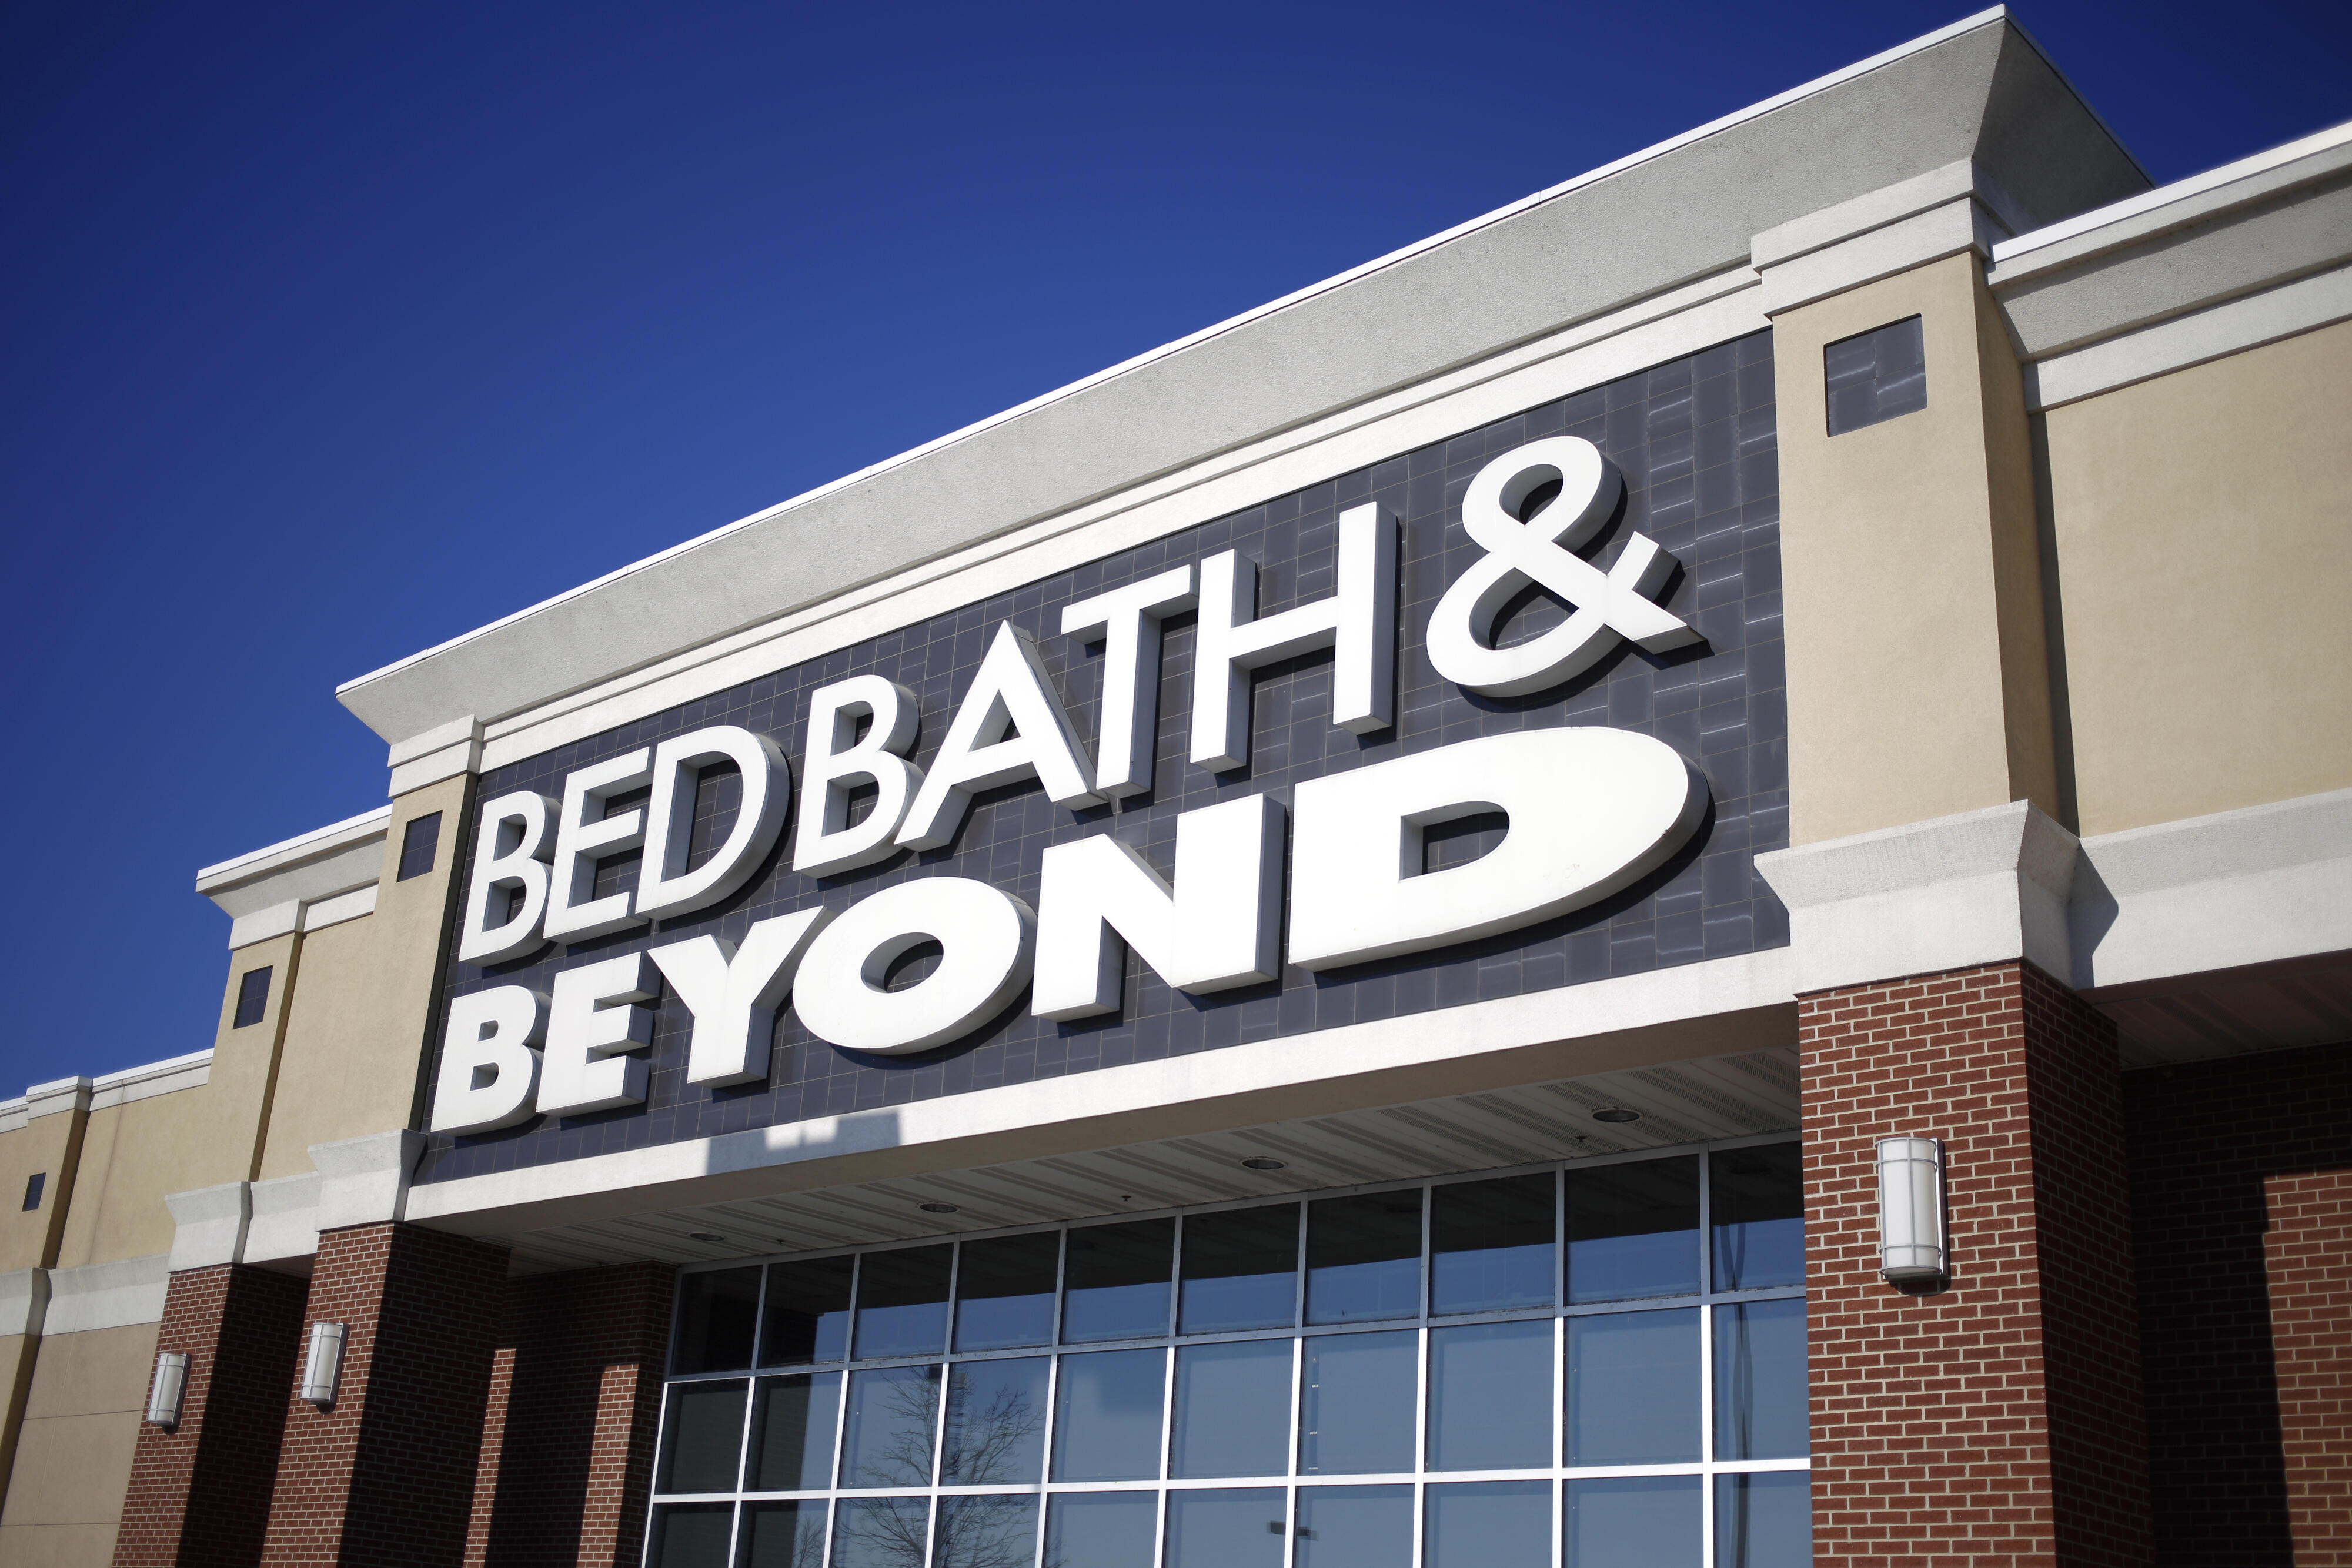 43 Bed Bath Beyond Stores To Close Including 4 Florida Locations Iheartradio